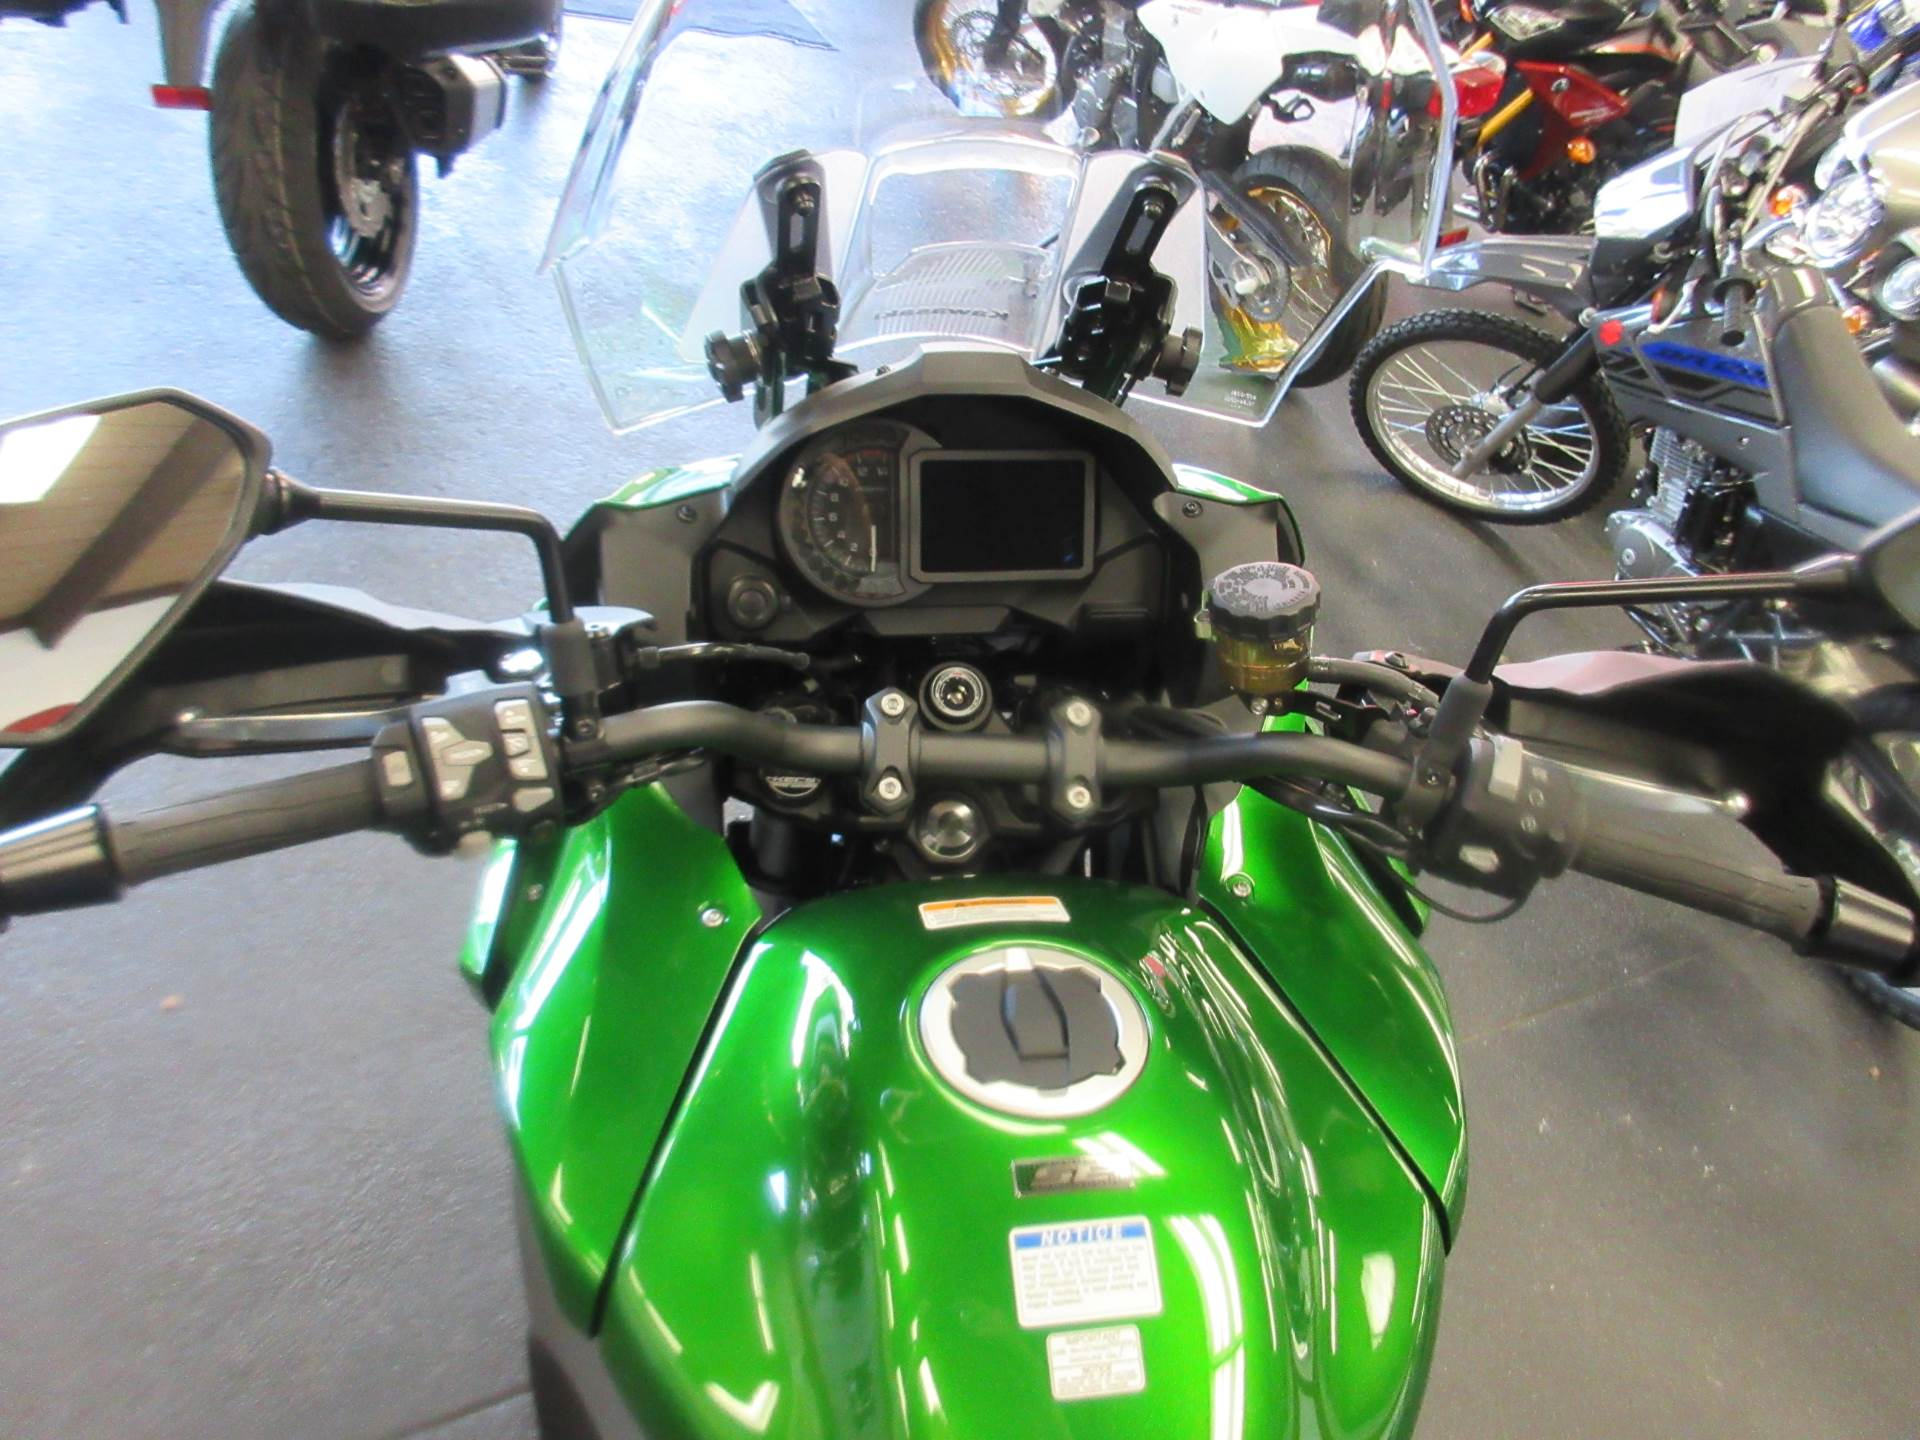 2020 Kawasaki Versys 1000 SE LT+ in Sacramento, California - Photo 5